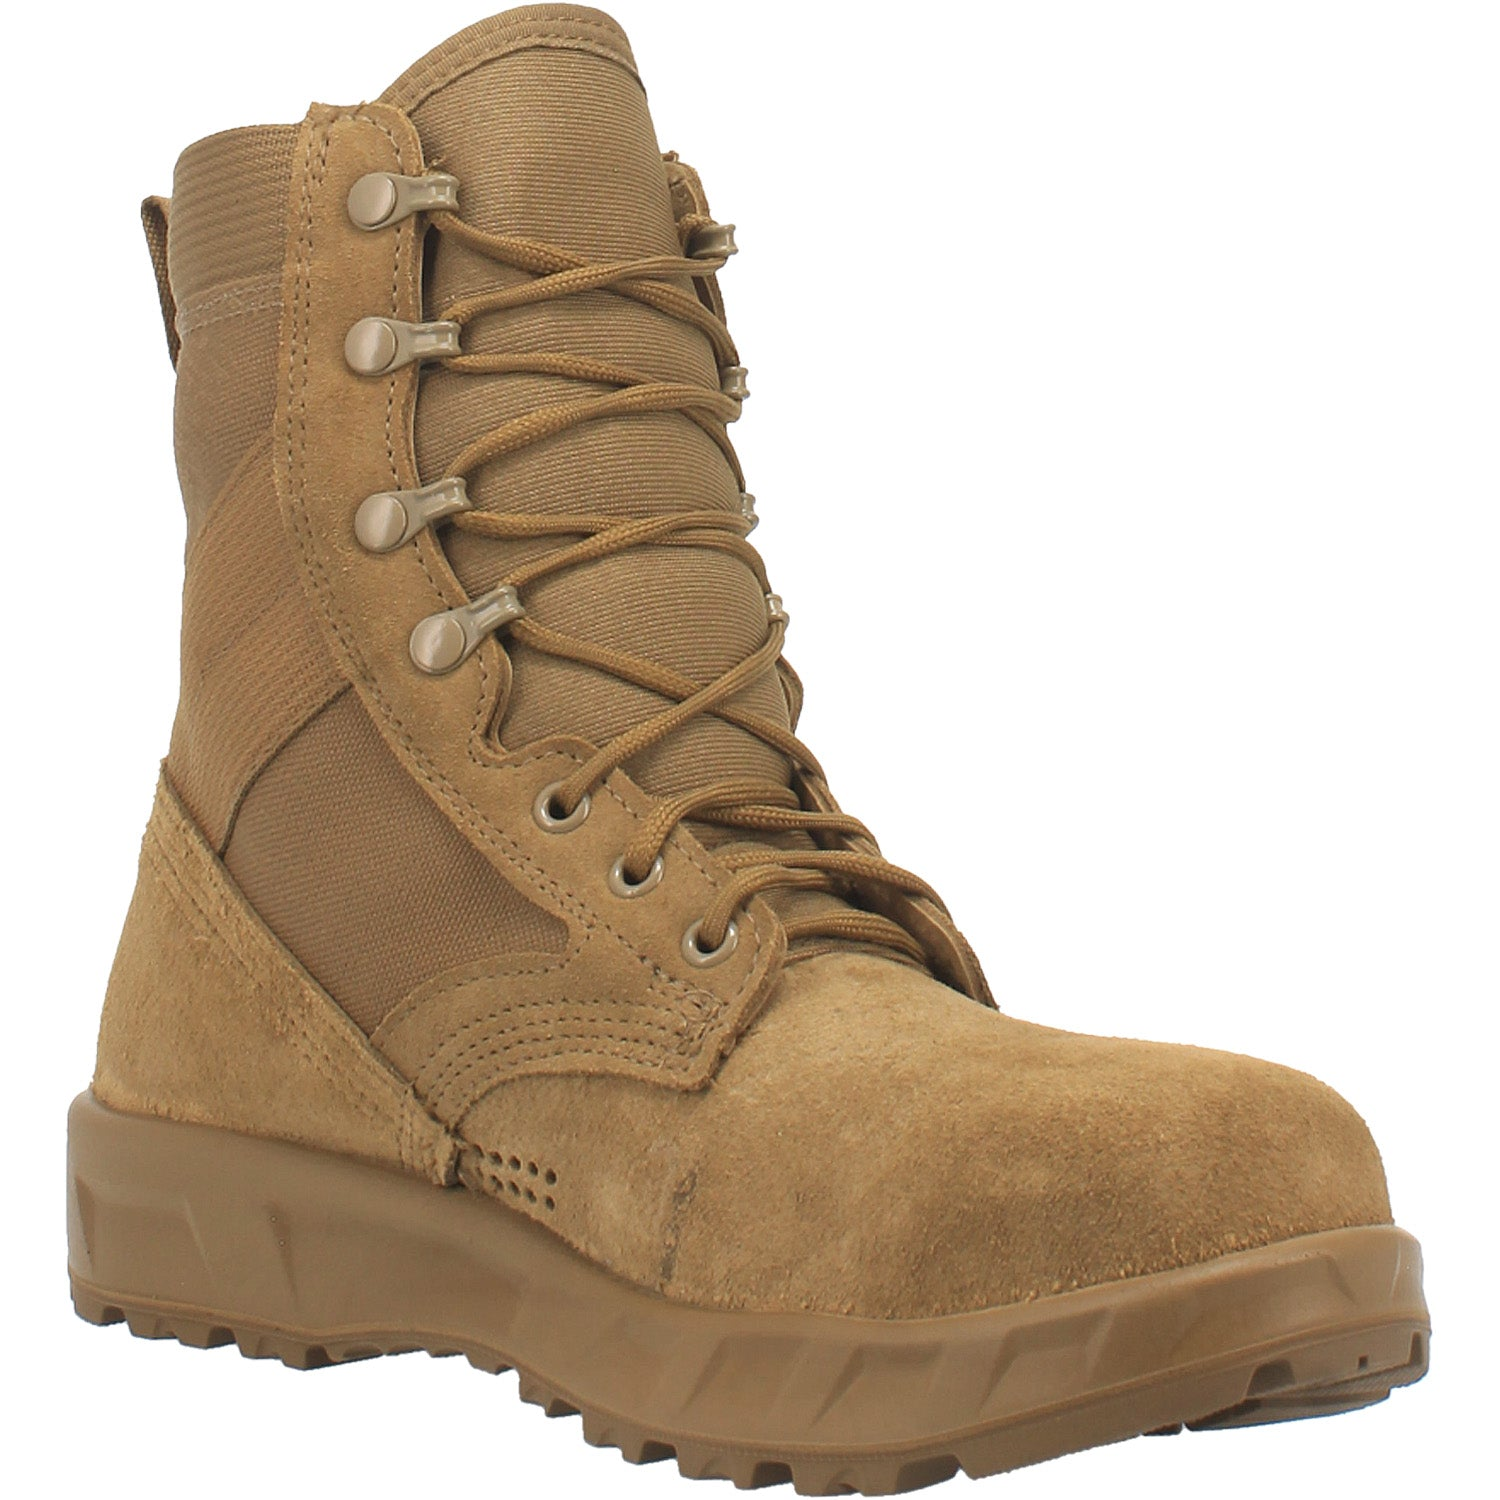 T2 Ultra Light Hot Weather Steel Toe Combat Boot 14940839837738